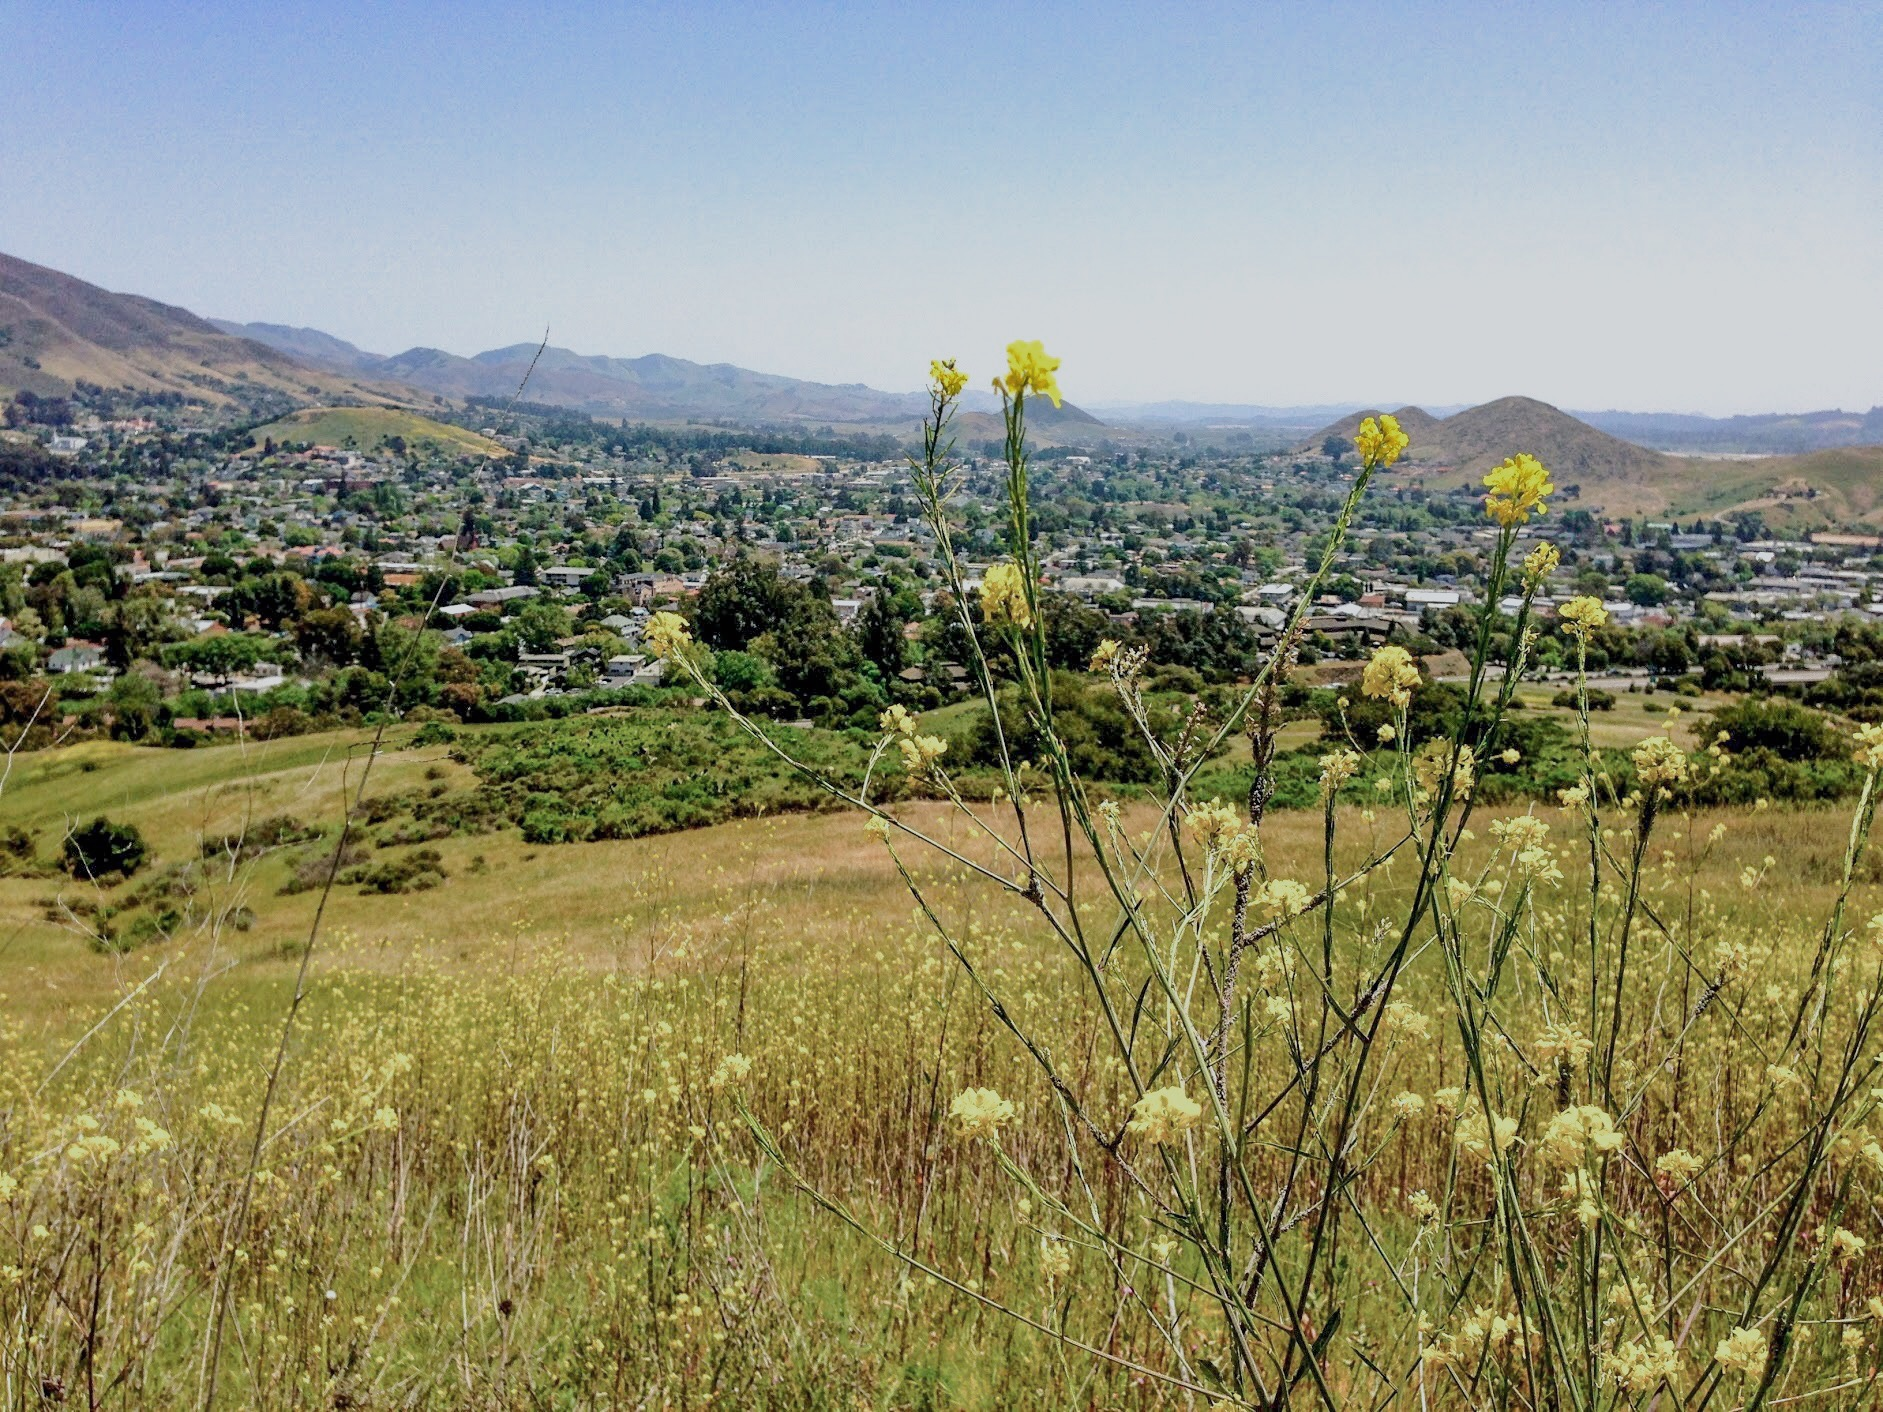 Take in the views of San Luis Obispo with a hike up Madonna Mountain.